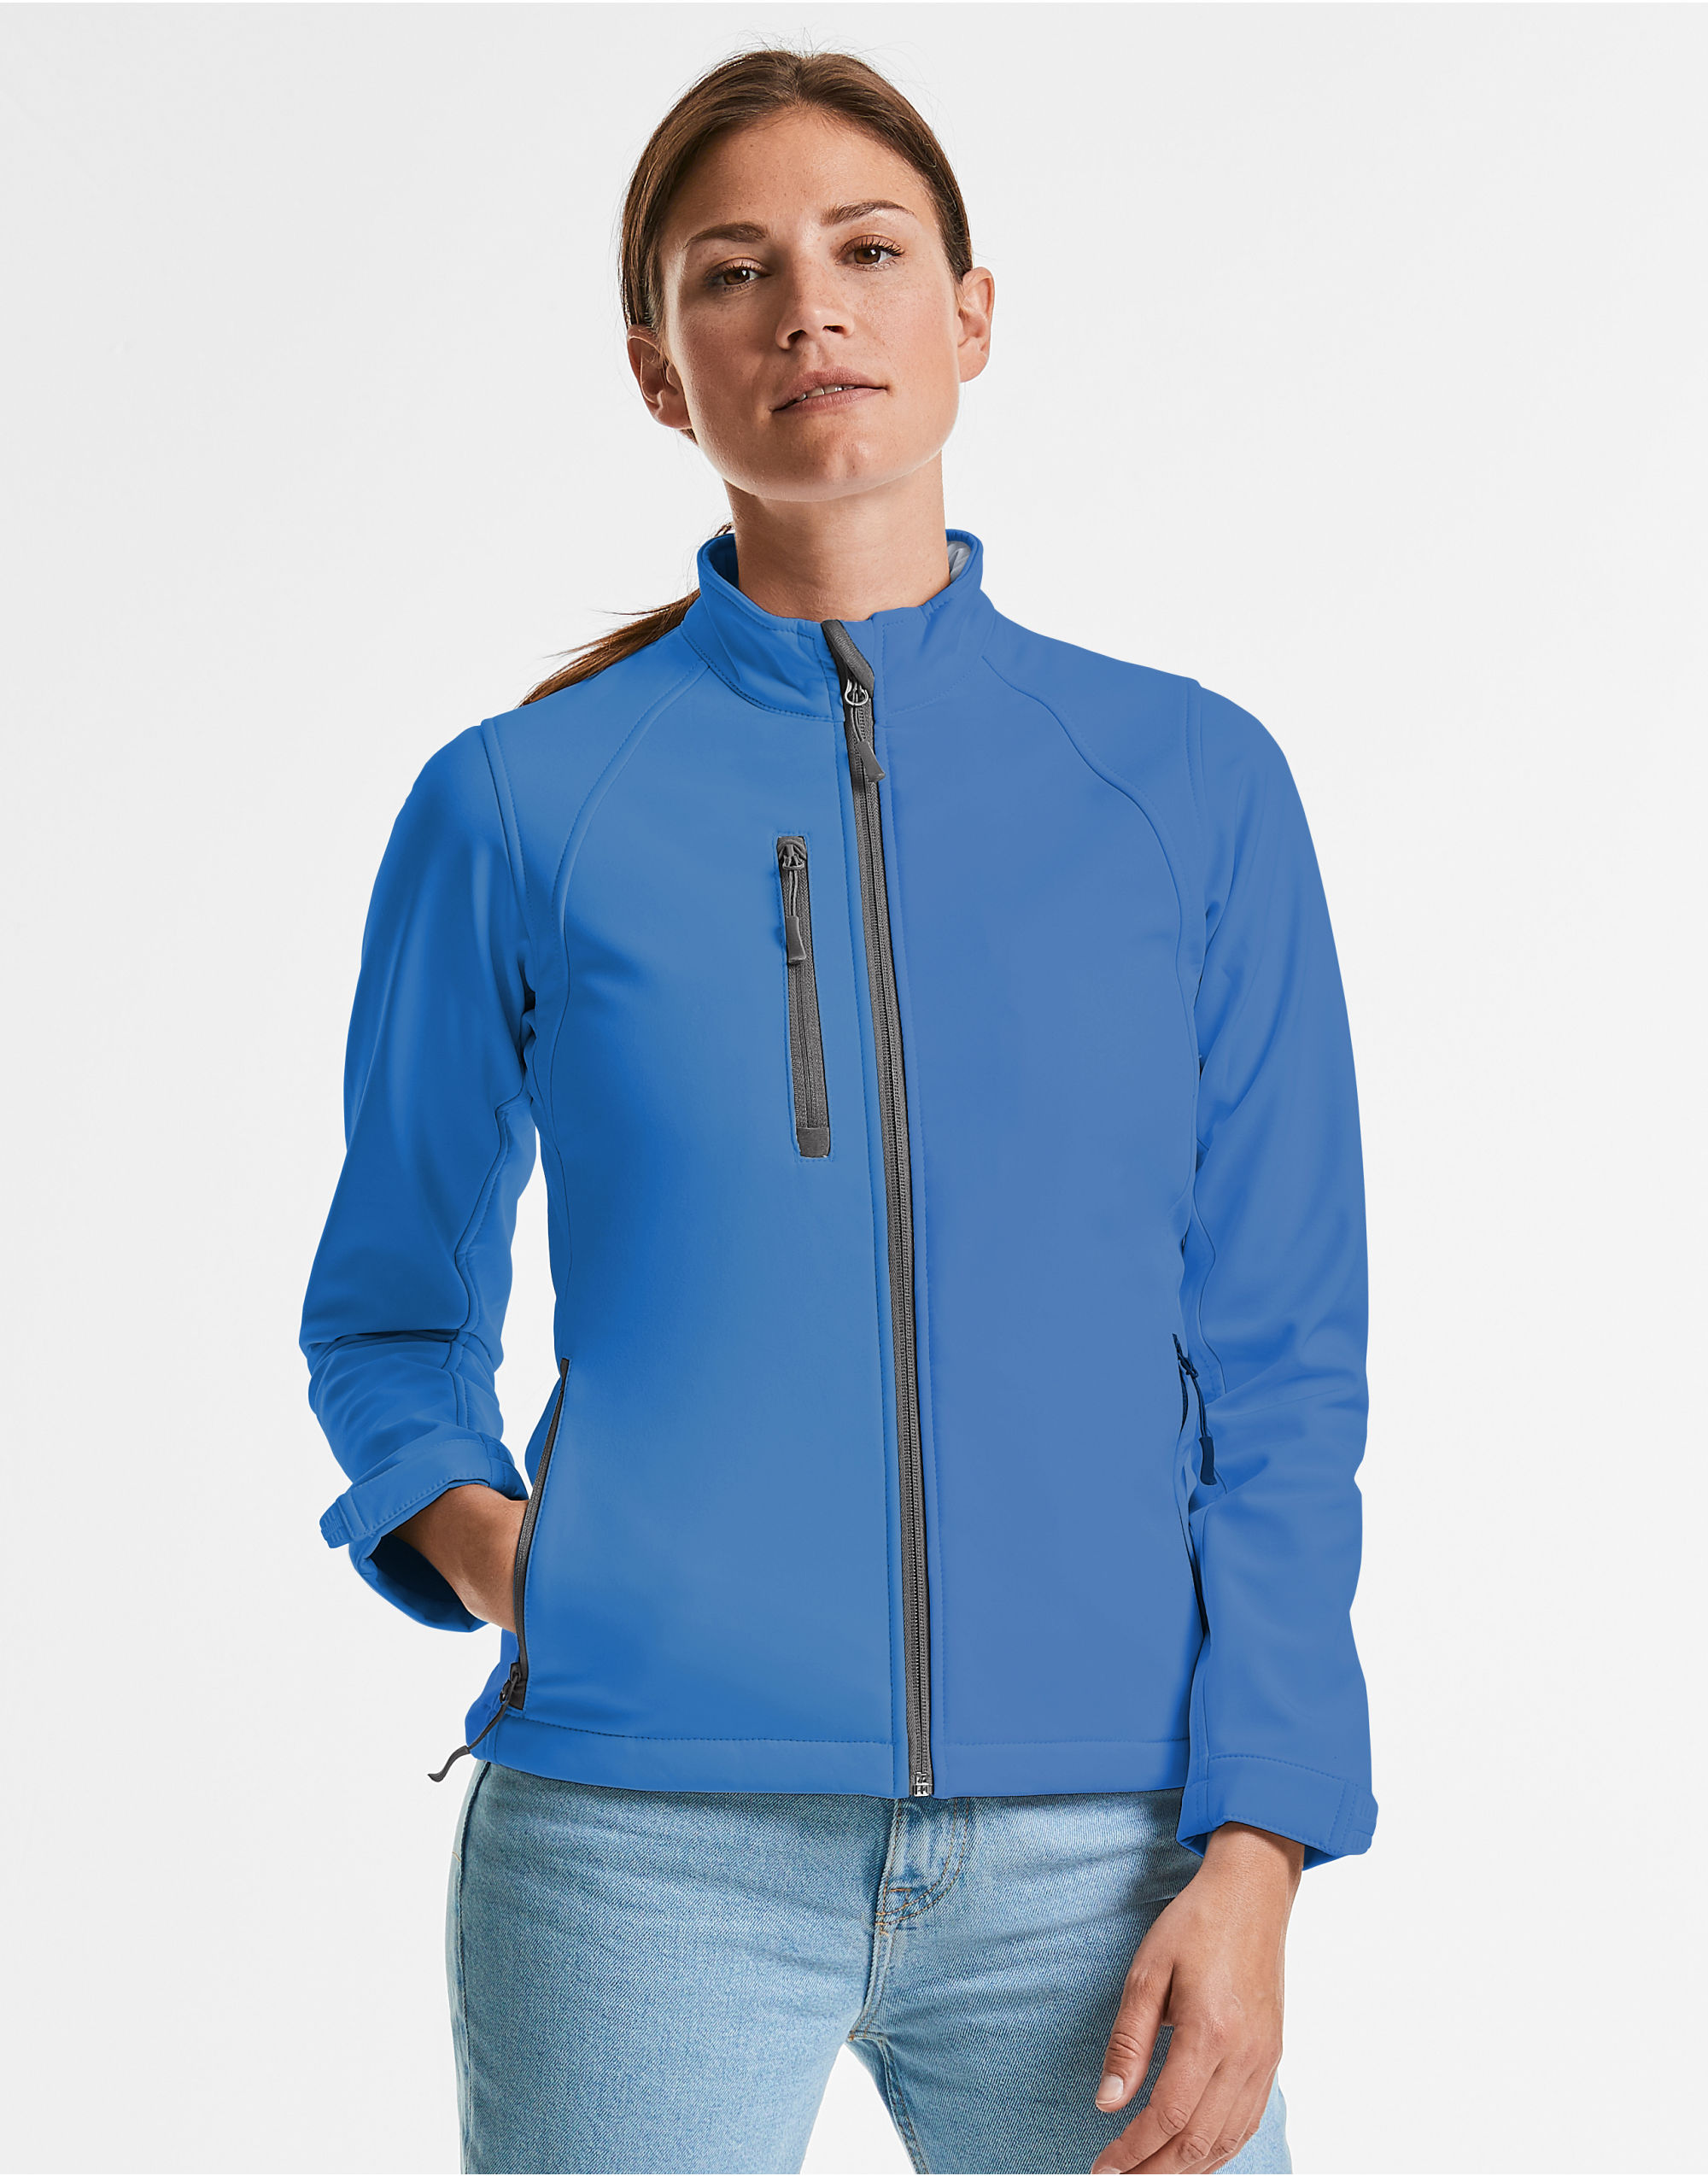 Russell Ladies' Softshell Jacket